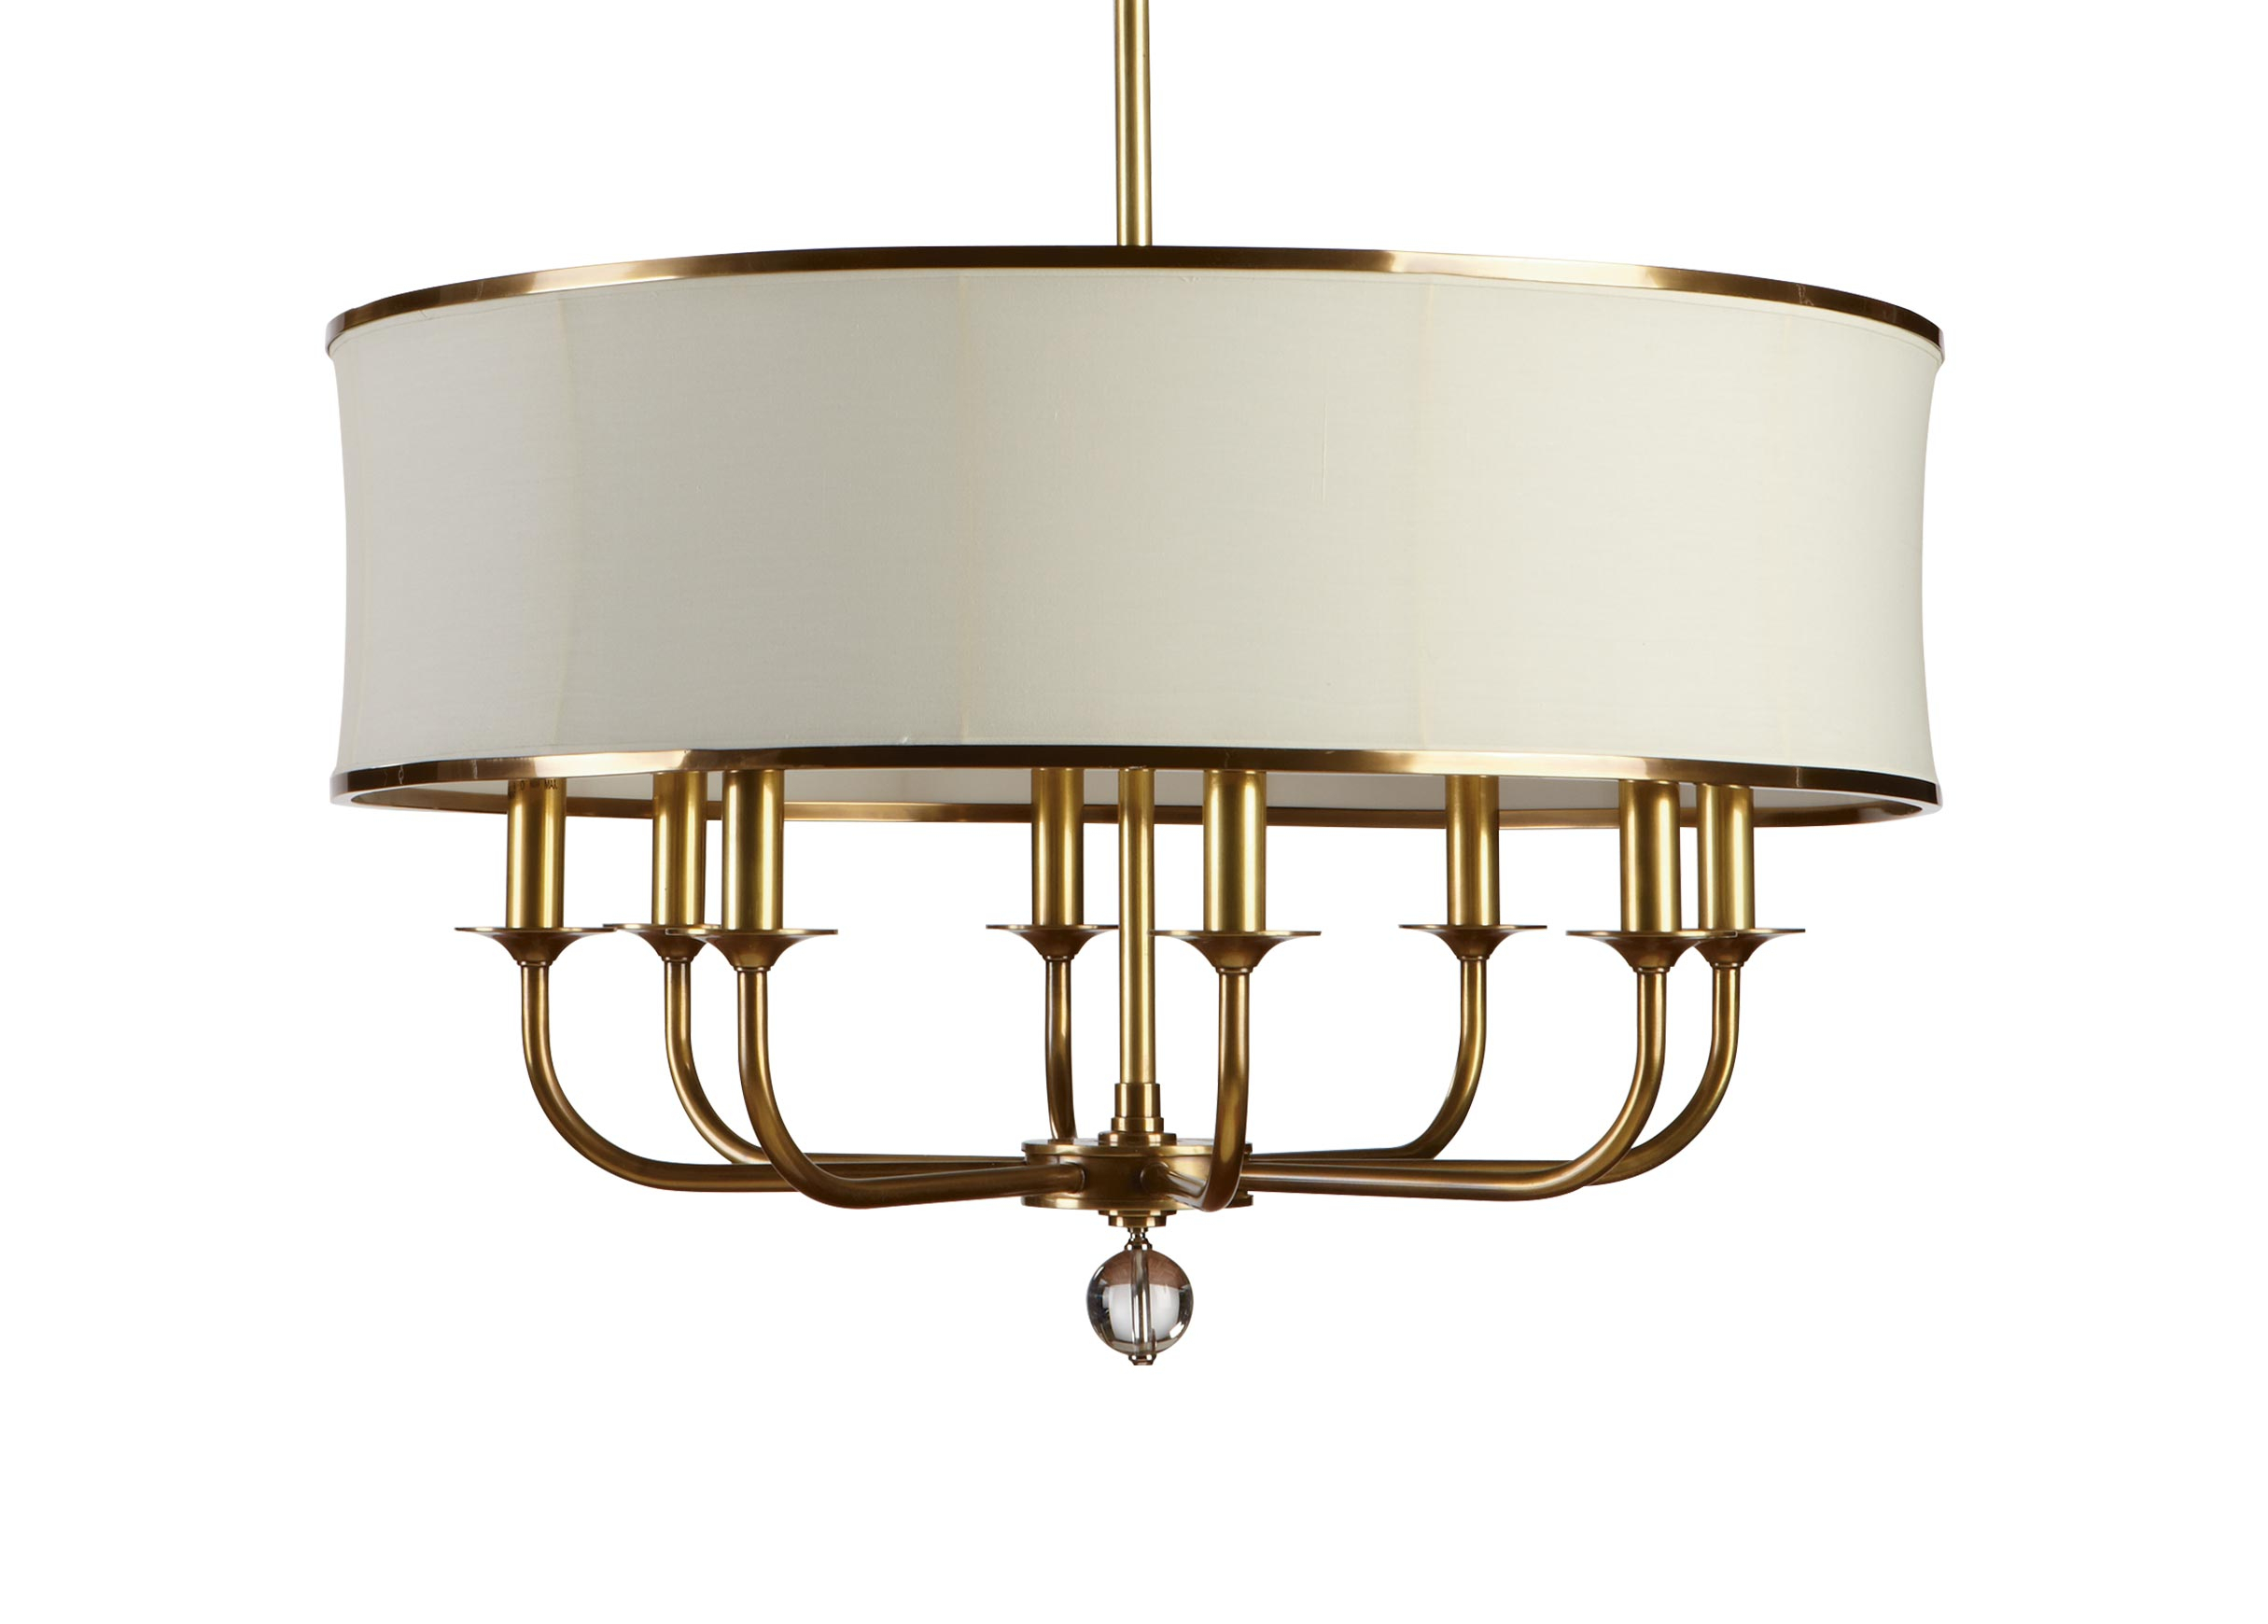 Zoe Eight Light Brass Chandelier | Chandeliers | Ethan Allen For Shaylee 8 Light Candle Style Chandeliers (View 24 of 30)